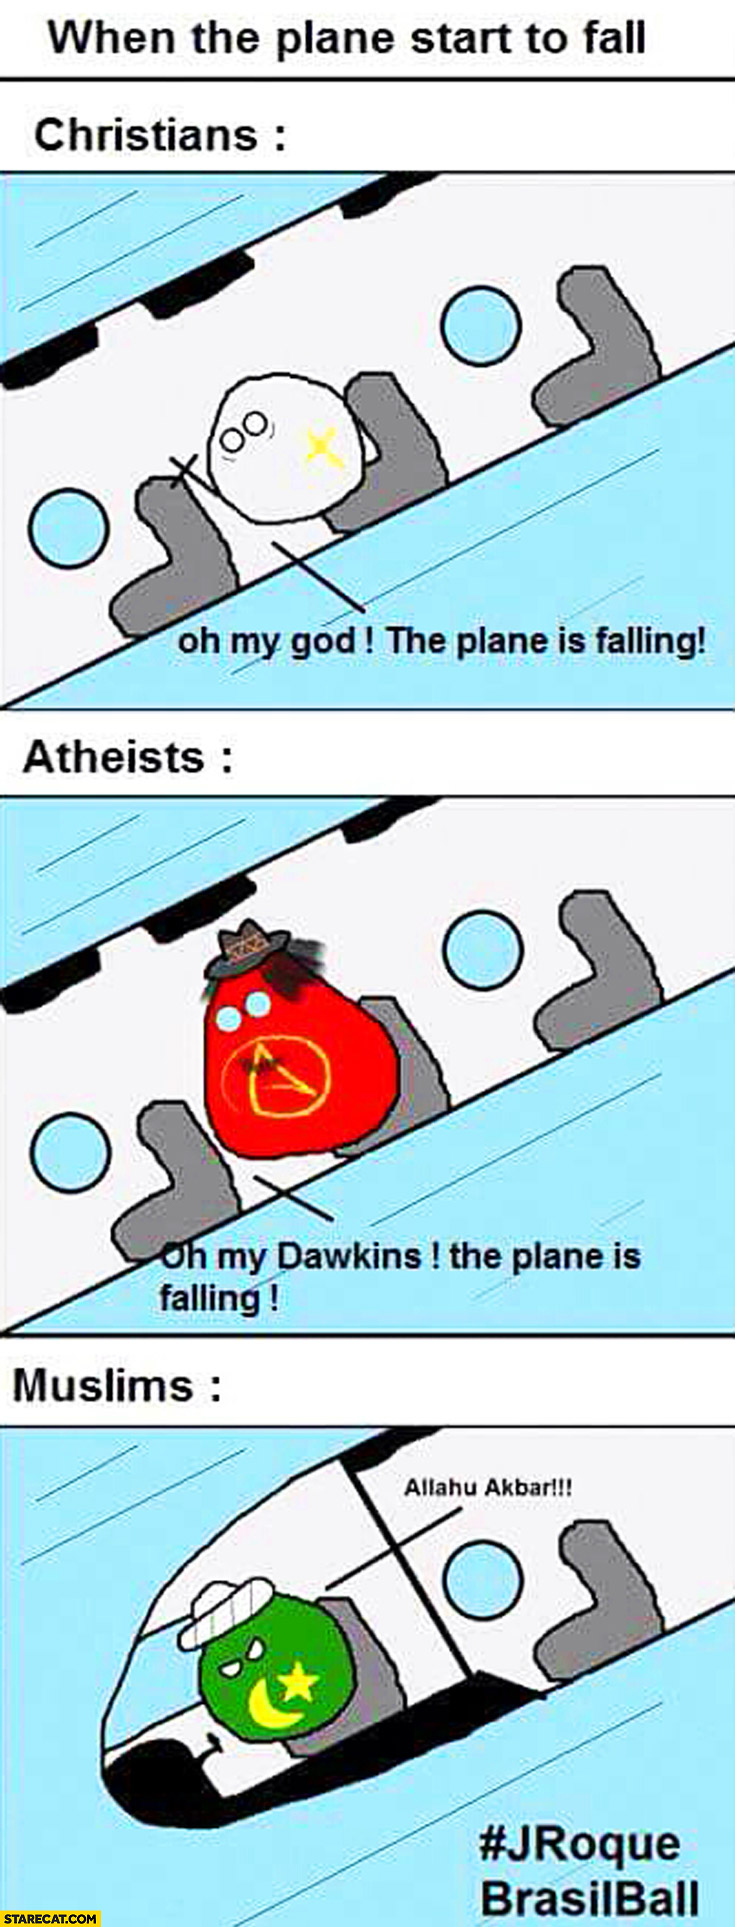 When plane starts to fall. Christians: oh my God, atheists: oh my Dawkins, Muslims: Allahu Akbar